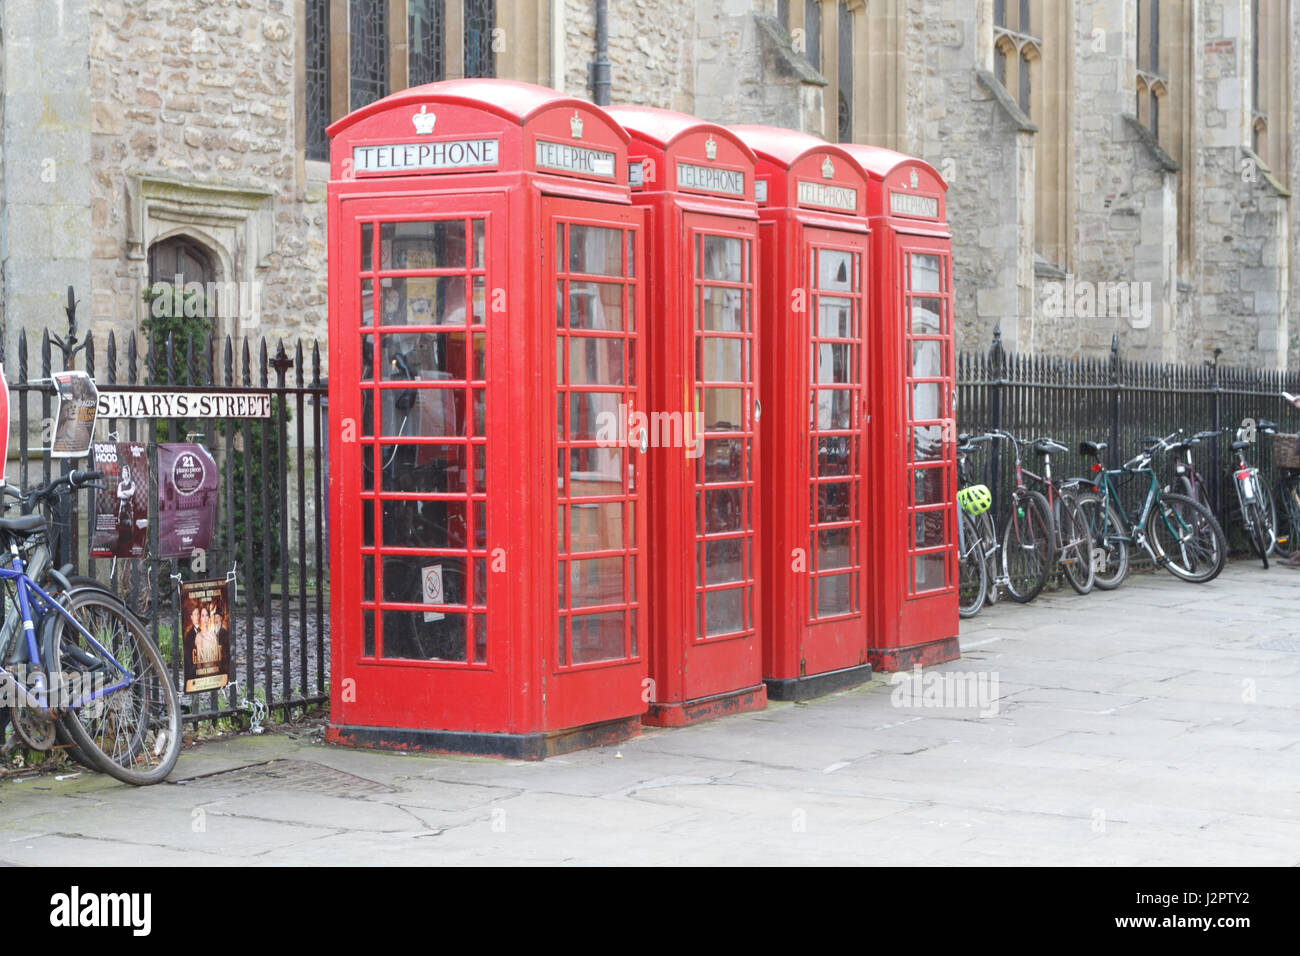 Telephone Boxes, Market Square, Cambridge, UK - Stock Image